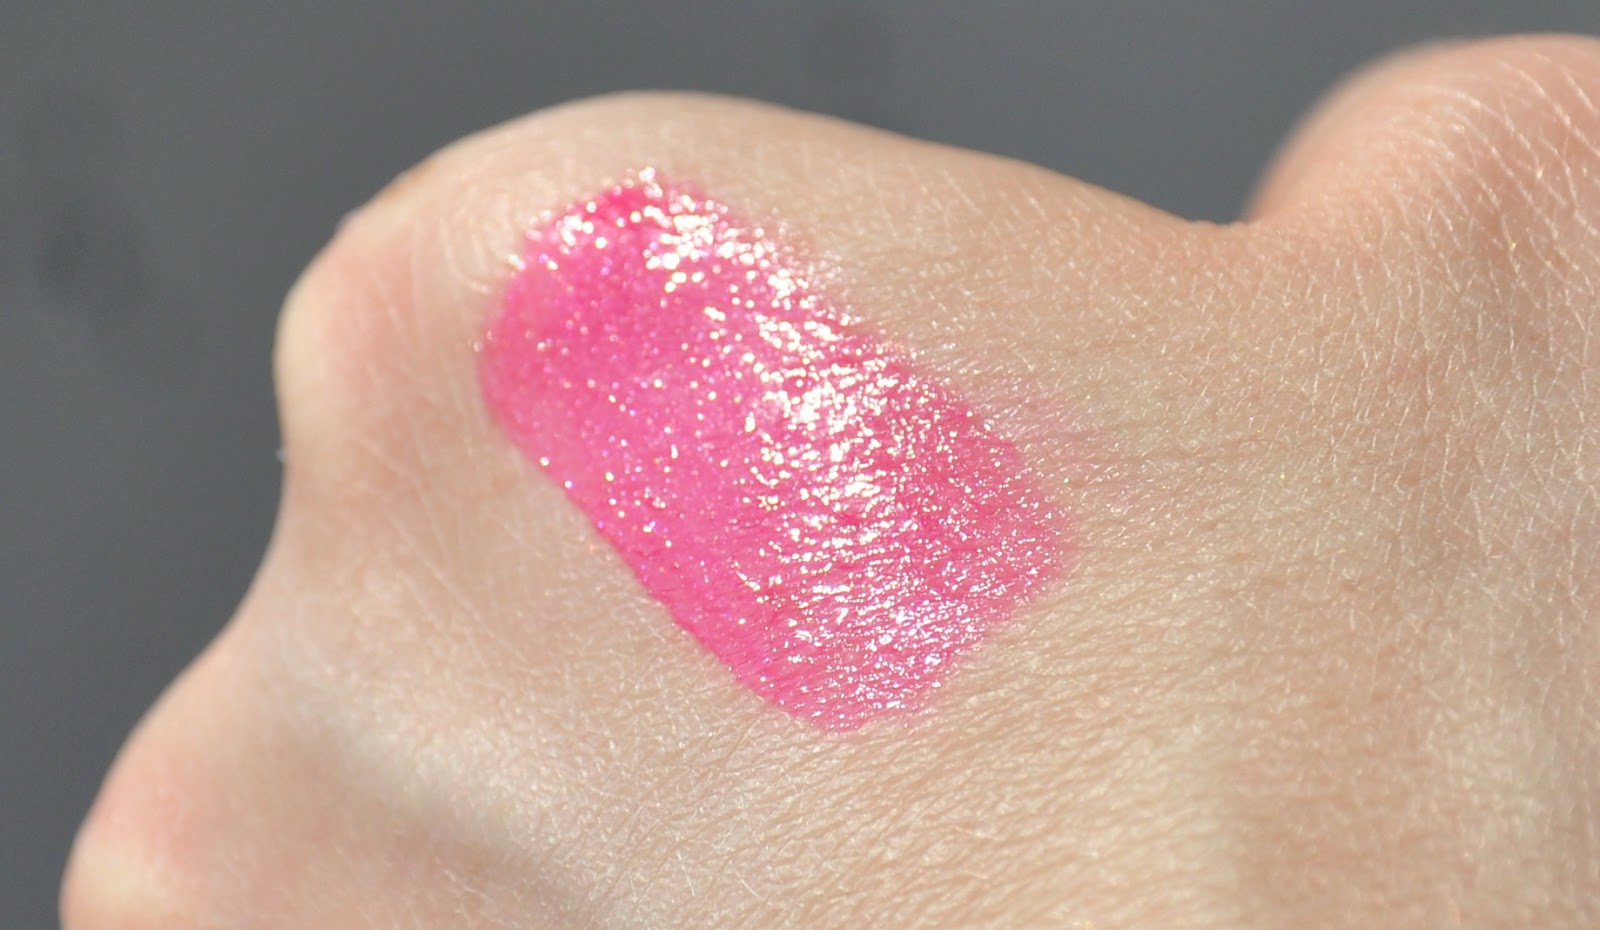 YSL Gloss Volupte Extreme Shine #49 Terriblement Fuchsia